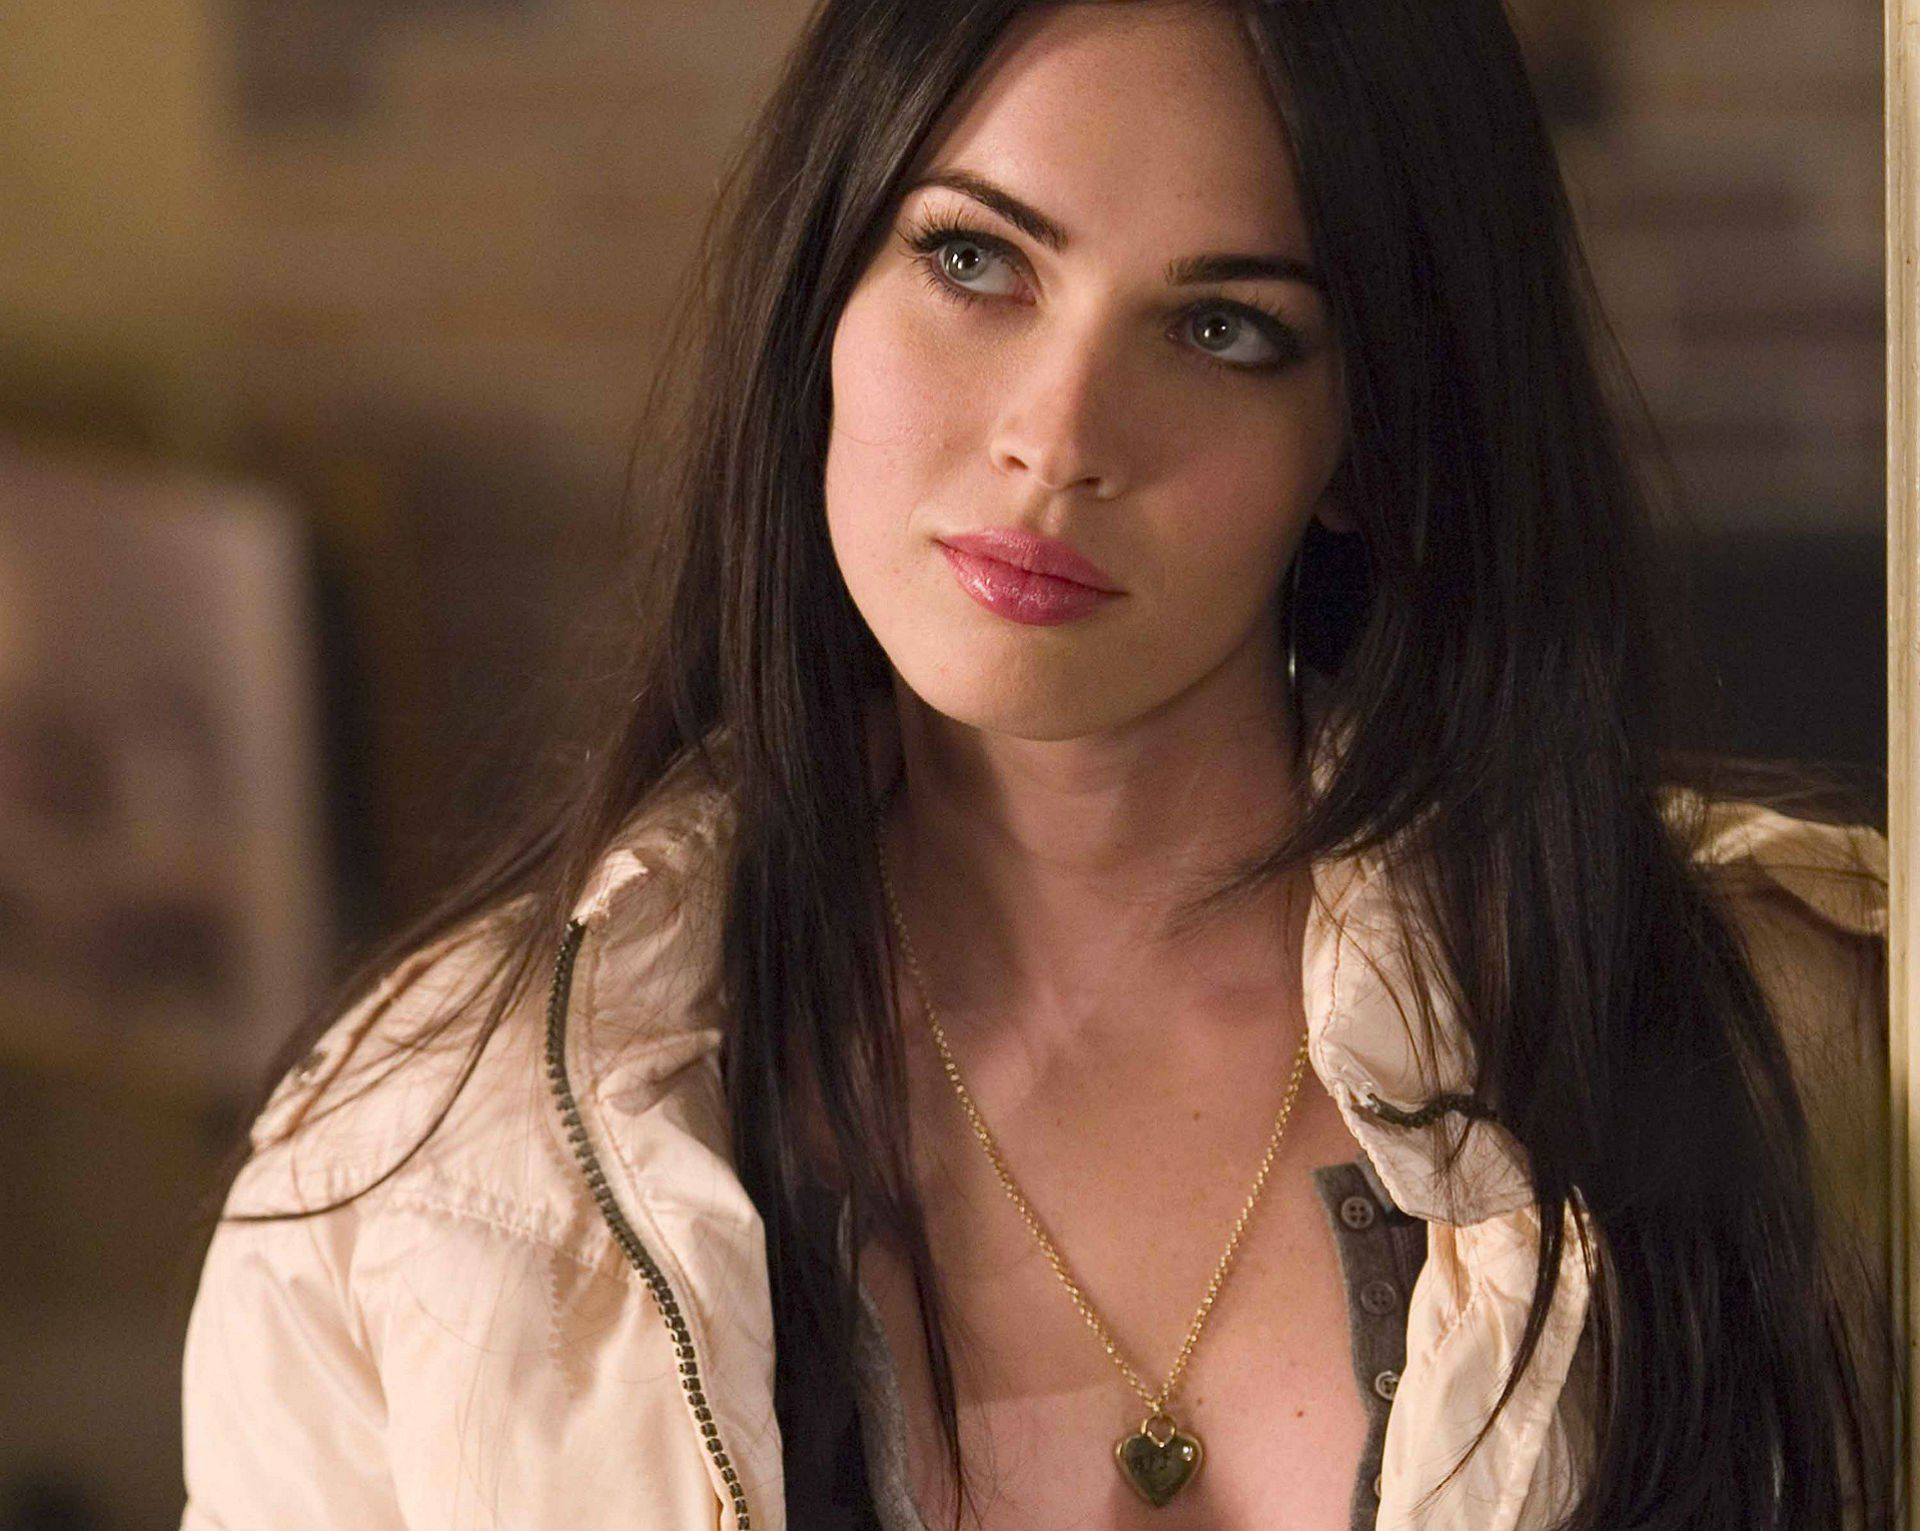 Megan Fox Images Jennifers Body Promotional